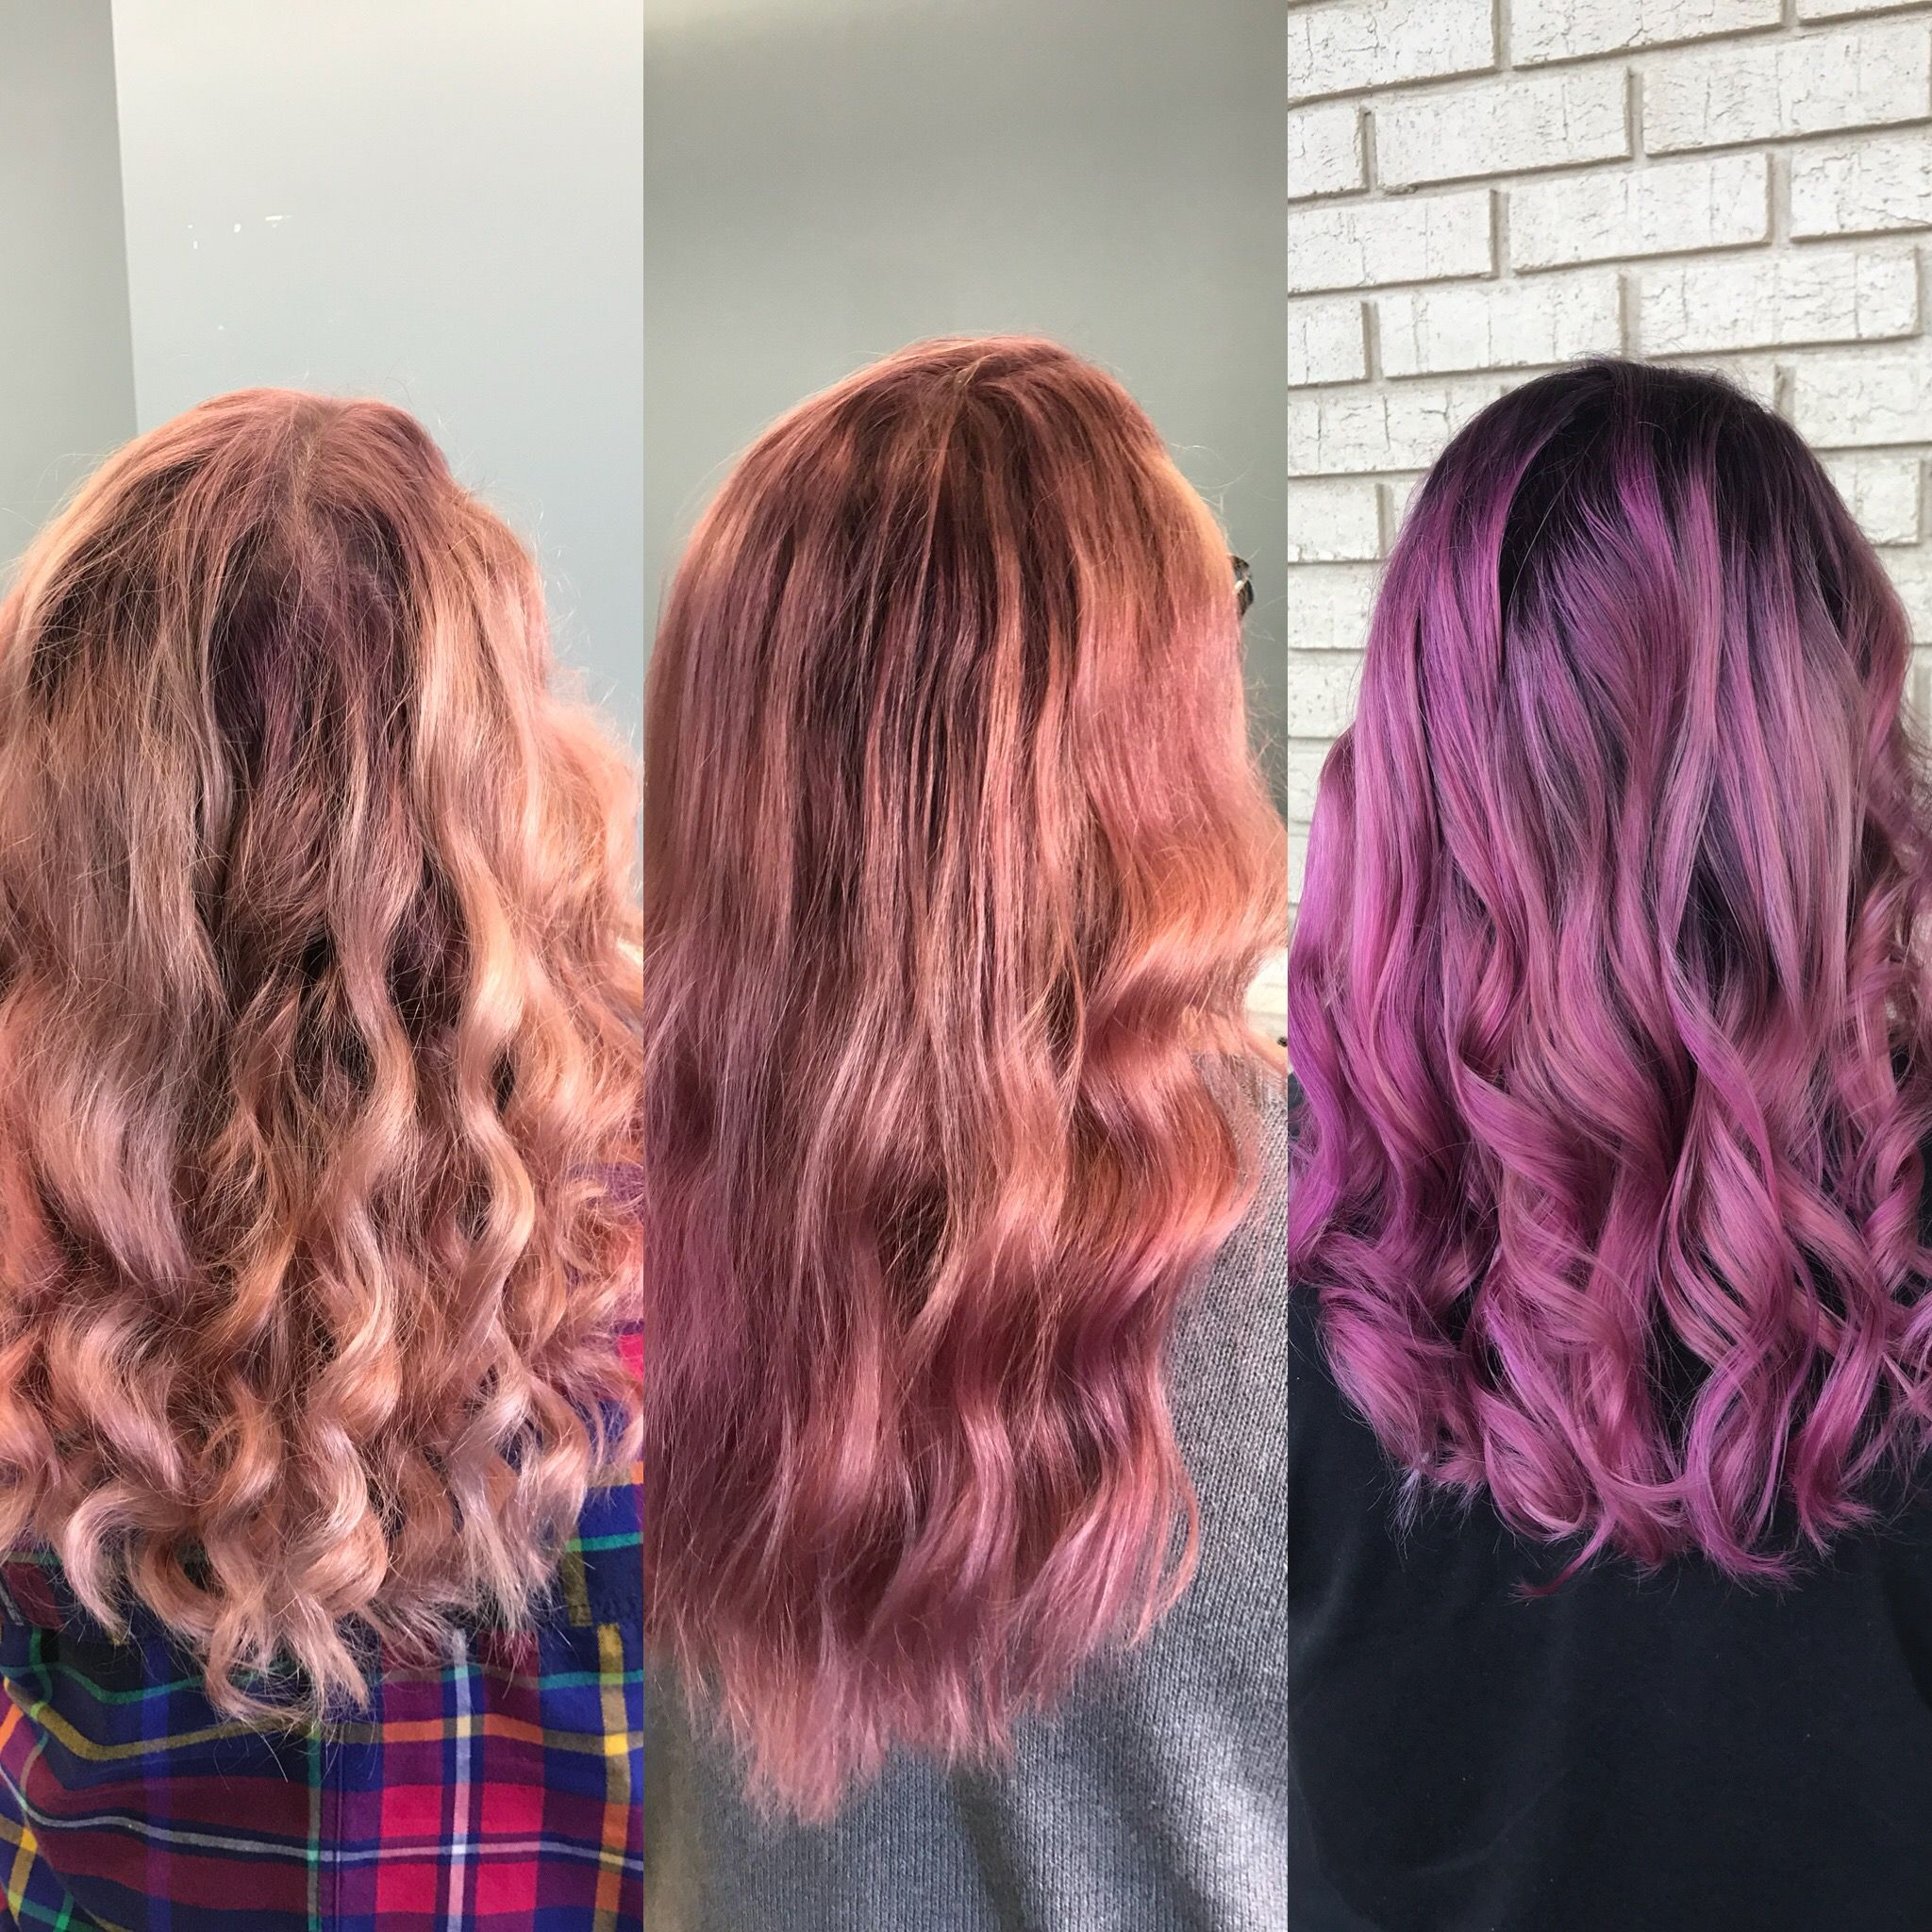 4 Wash 2 Washes And Day Dyed Purple Pink Hair And How It Fades Pink Purple Hair Pink Hair Purple Hair